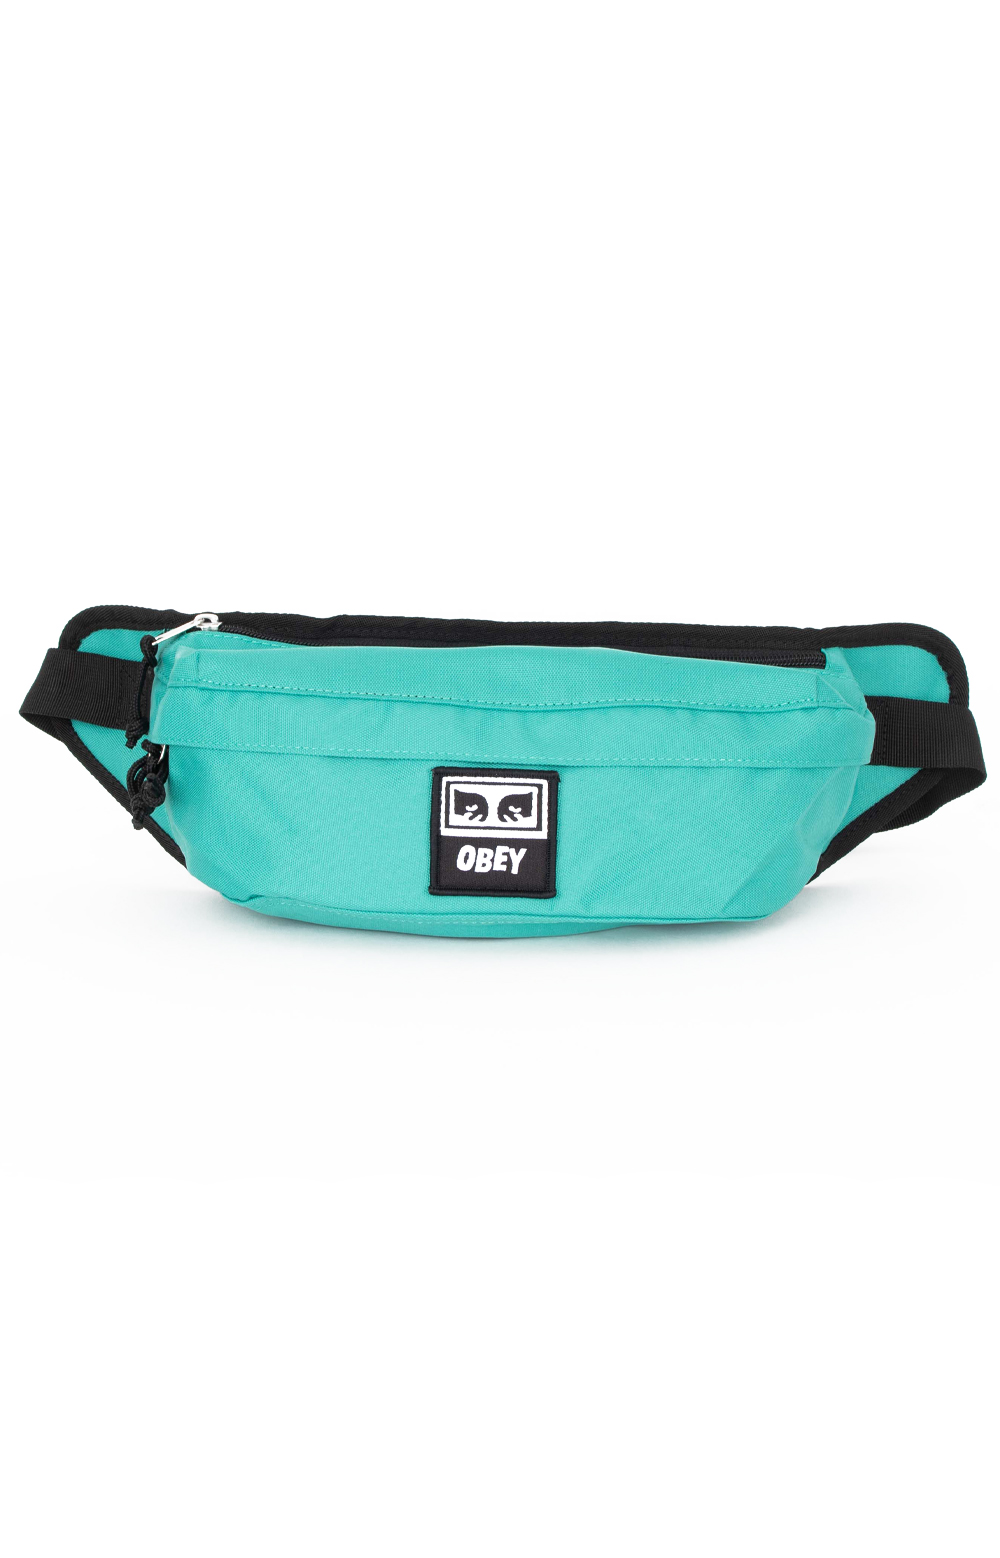 50b9217851 Drop Out Sling Pack - Teal